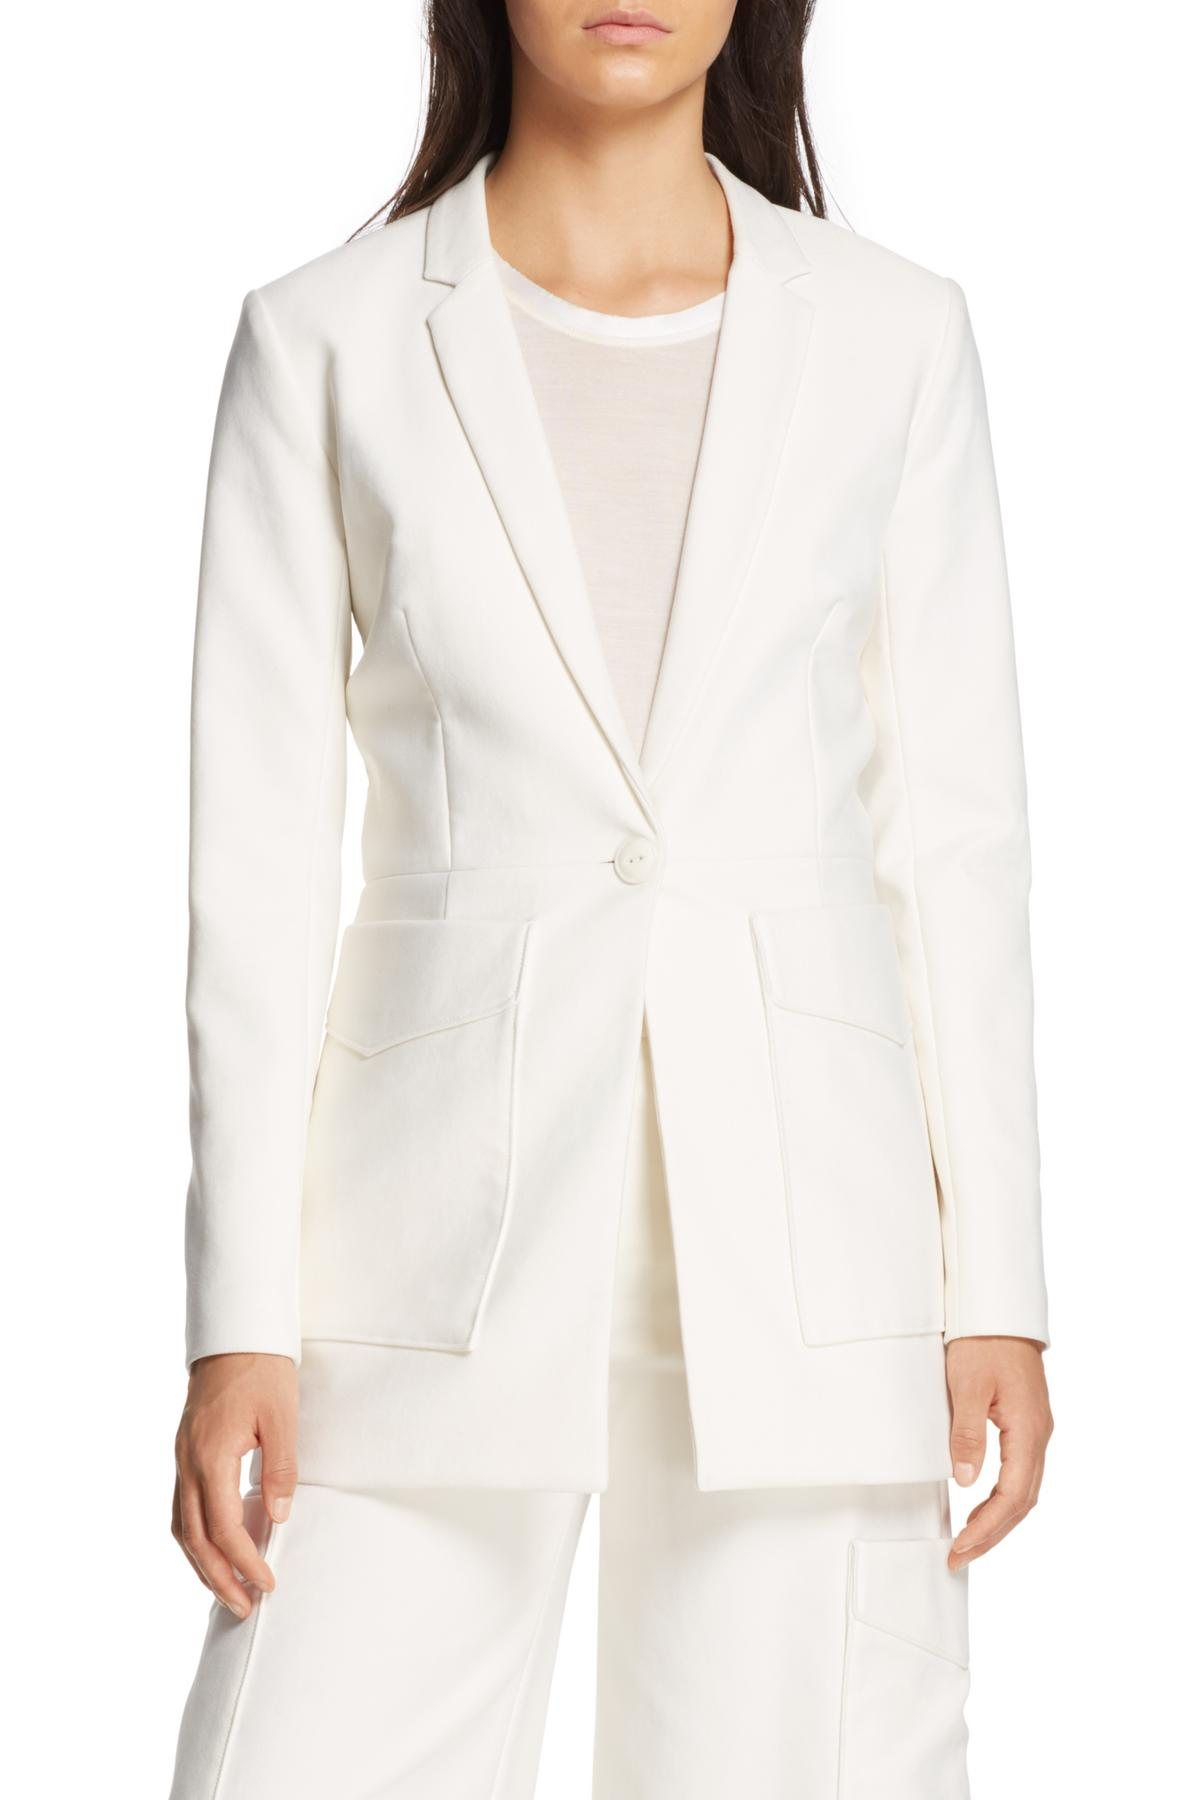 RAG & BONE FLEET BLAZER